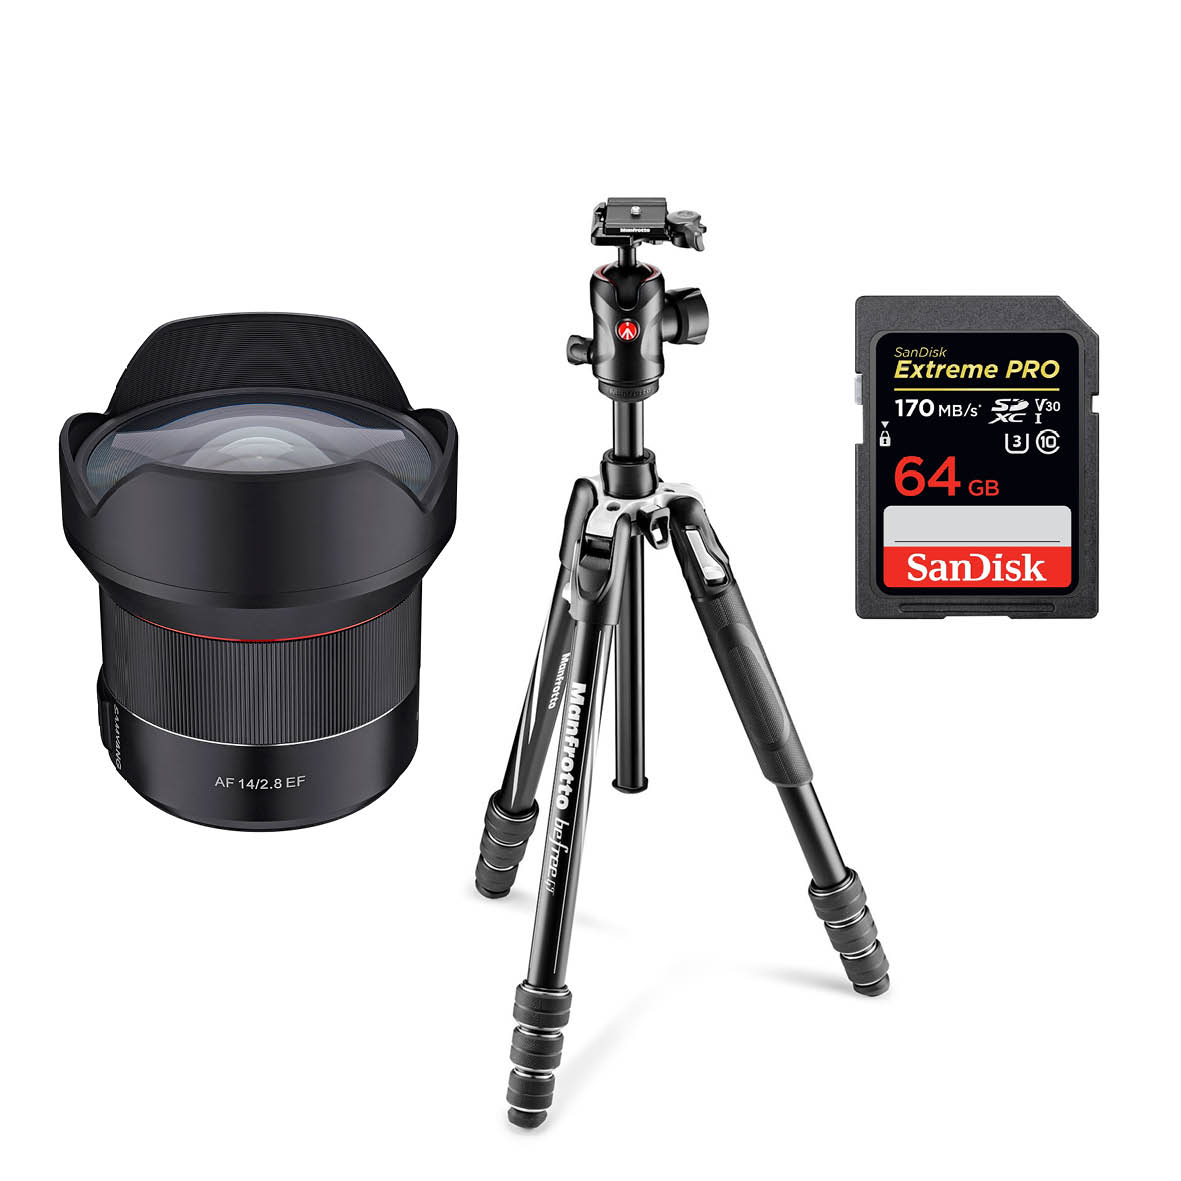 Astro - Sponsored by SamyangFirst: Samyang MF 14mm f/2.8, worth $1399Second: Manfrotto Befree GT Aluminium Travel Twist Tripod, worth $499Third: Sandisk Extreme Pro Micro SDXC 64GB 170MB/S C10, worth $66.95